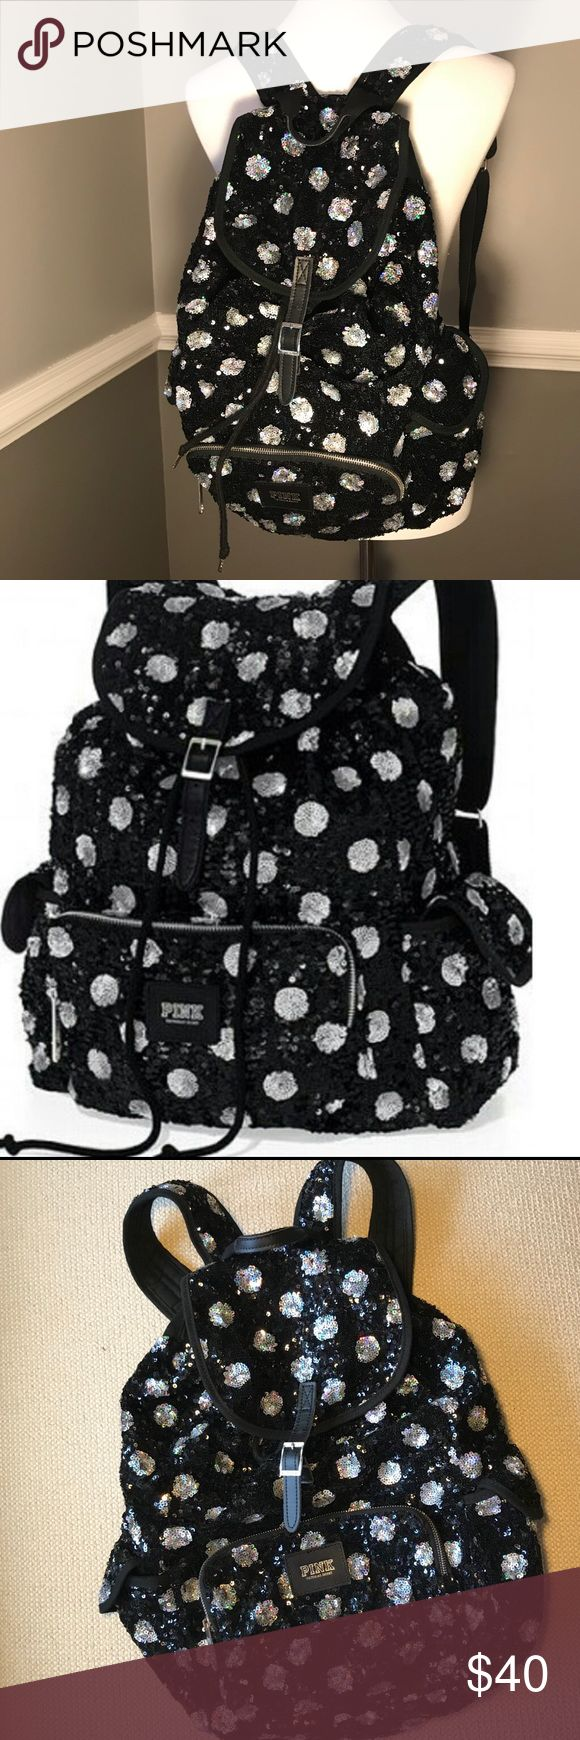 VS PINK sequin polka dot backpack Victoria's Secret PINK black and silver sequin polka dot backpack. Adjustable straps. Large interior with front zipper pocket and two side pockets. Great pre owned condition. Only flaw is nail polish? stains on the inside. (See last pic). PINK Victoria's Secret Bags Backpacks